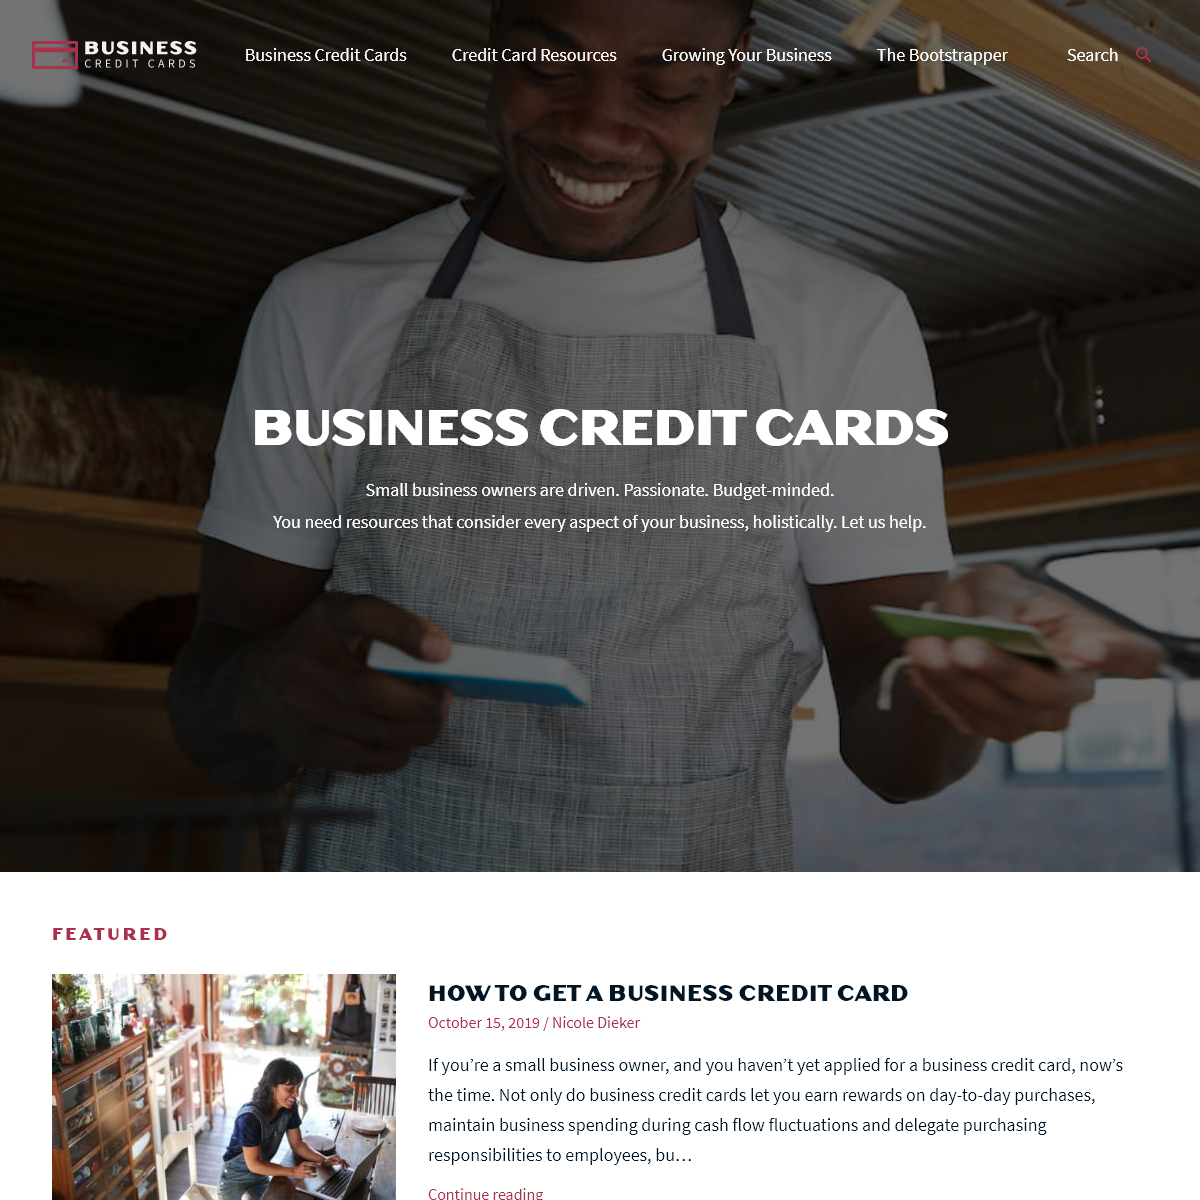 BusinessCreditCards.com - Providing the best resources for your business